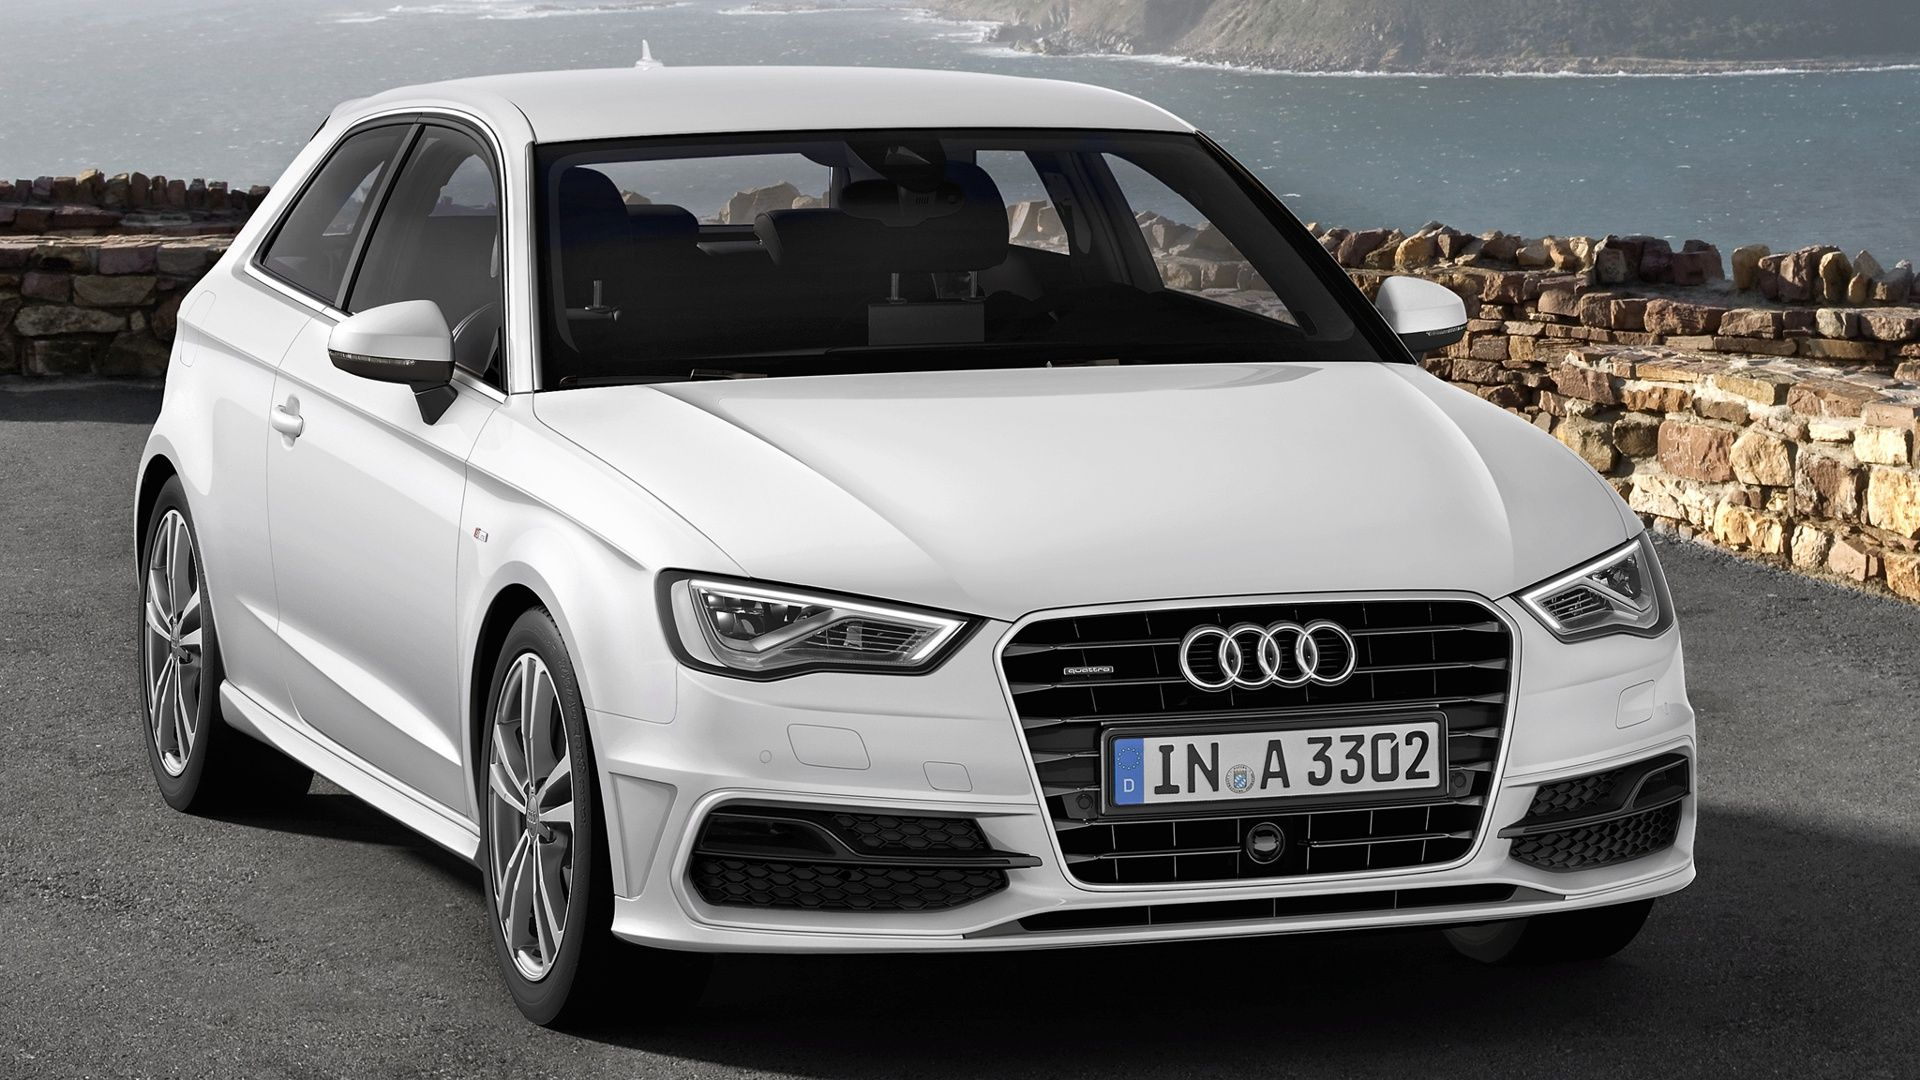 Pin By Eoin Dolan On Cars Audi A3 Audi A3 Quattro Audi Motor